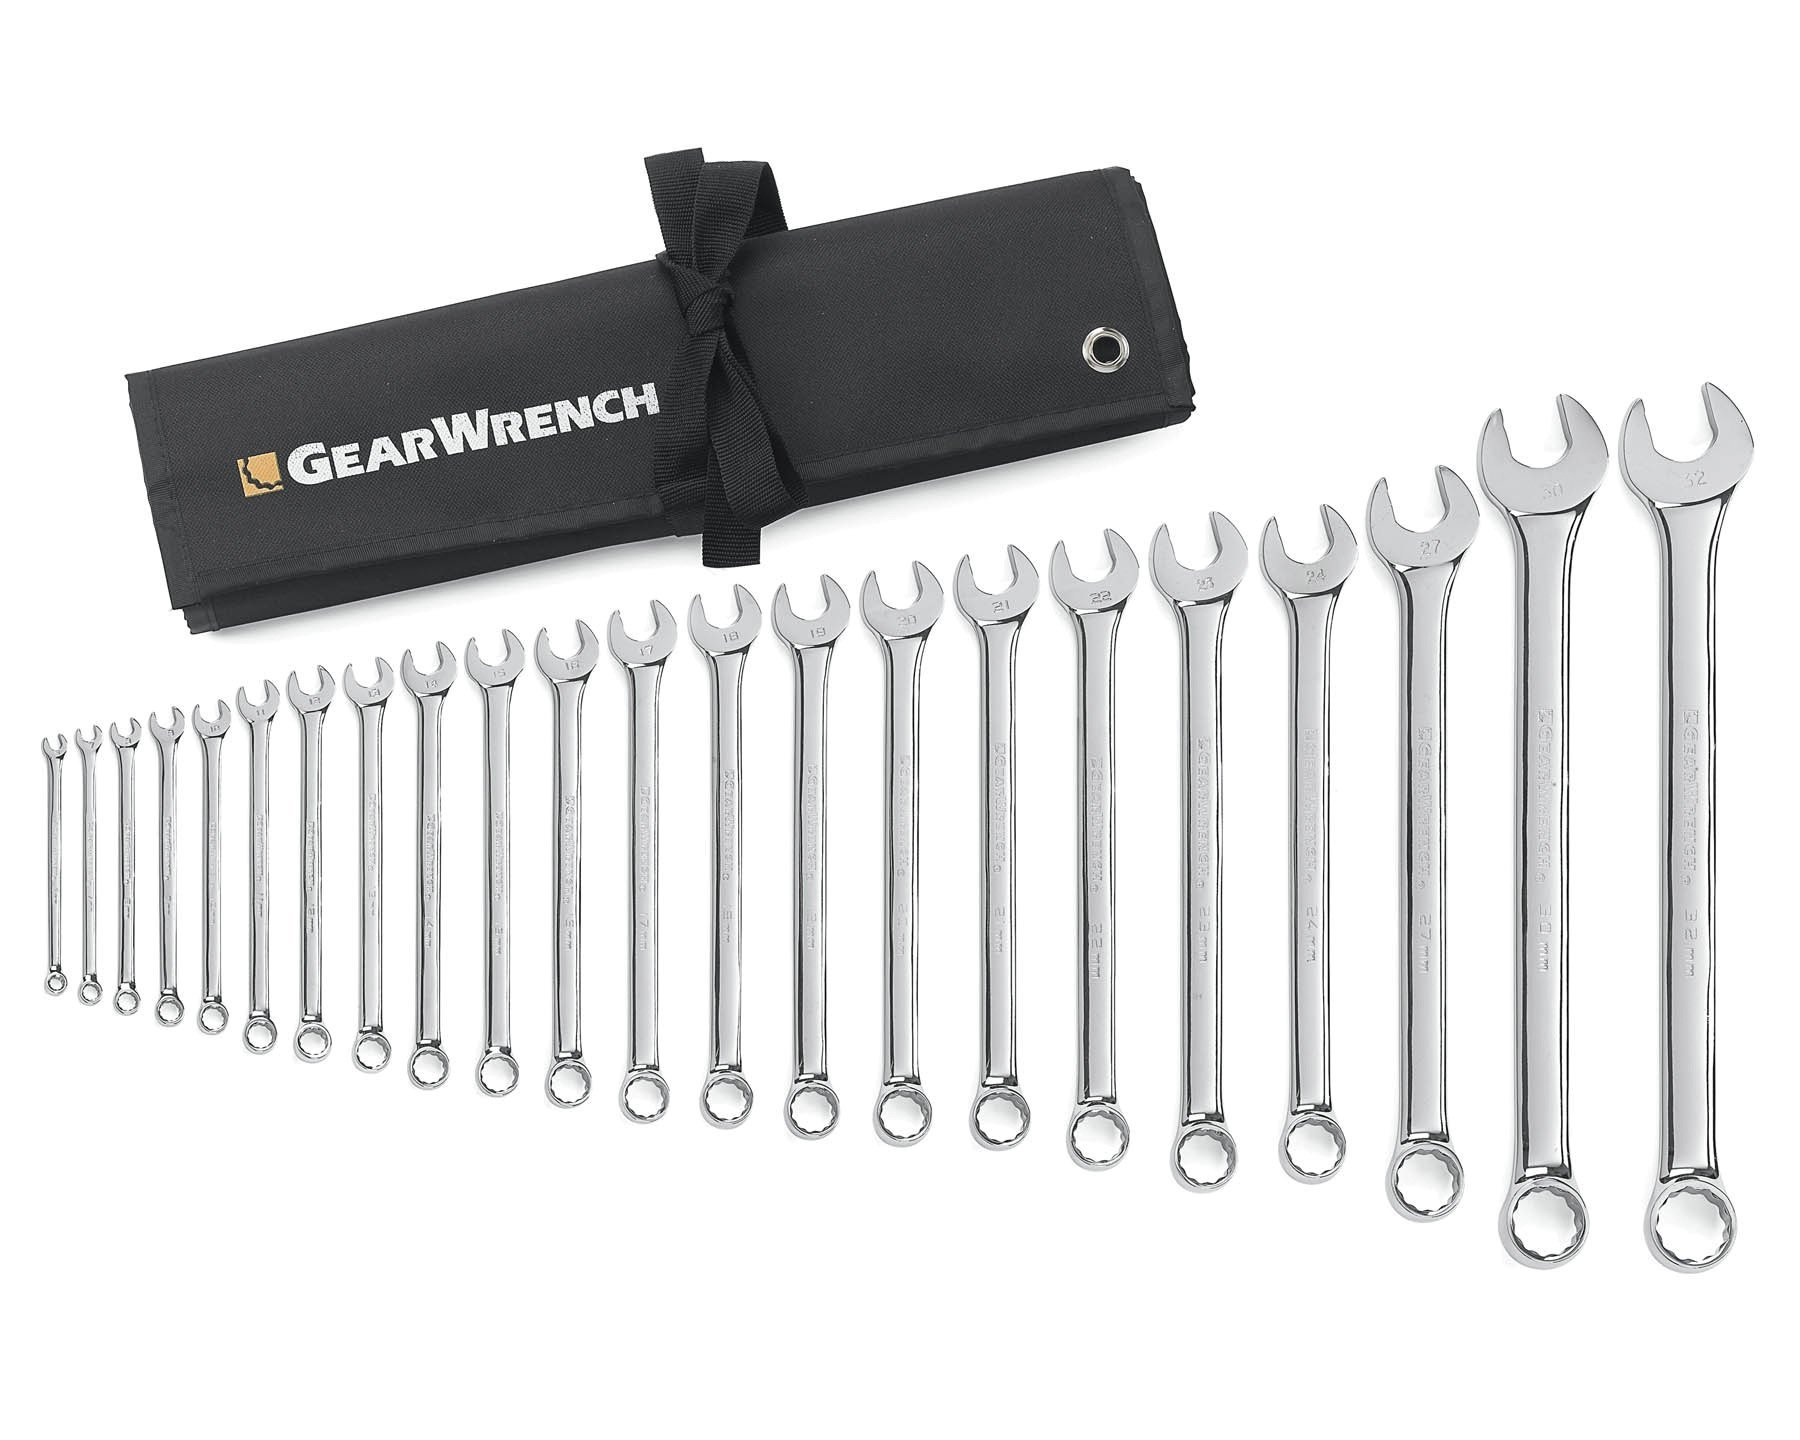 GearWrench 81916 22 Piece Metric Combination Wrench Set by GearWrench